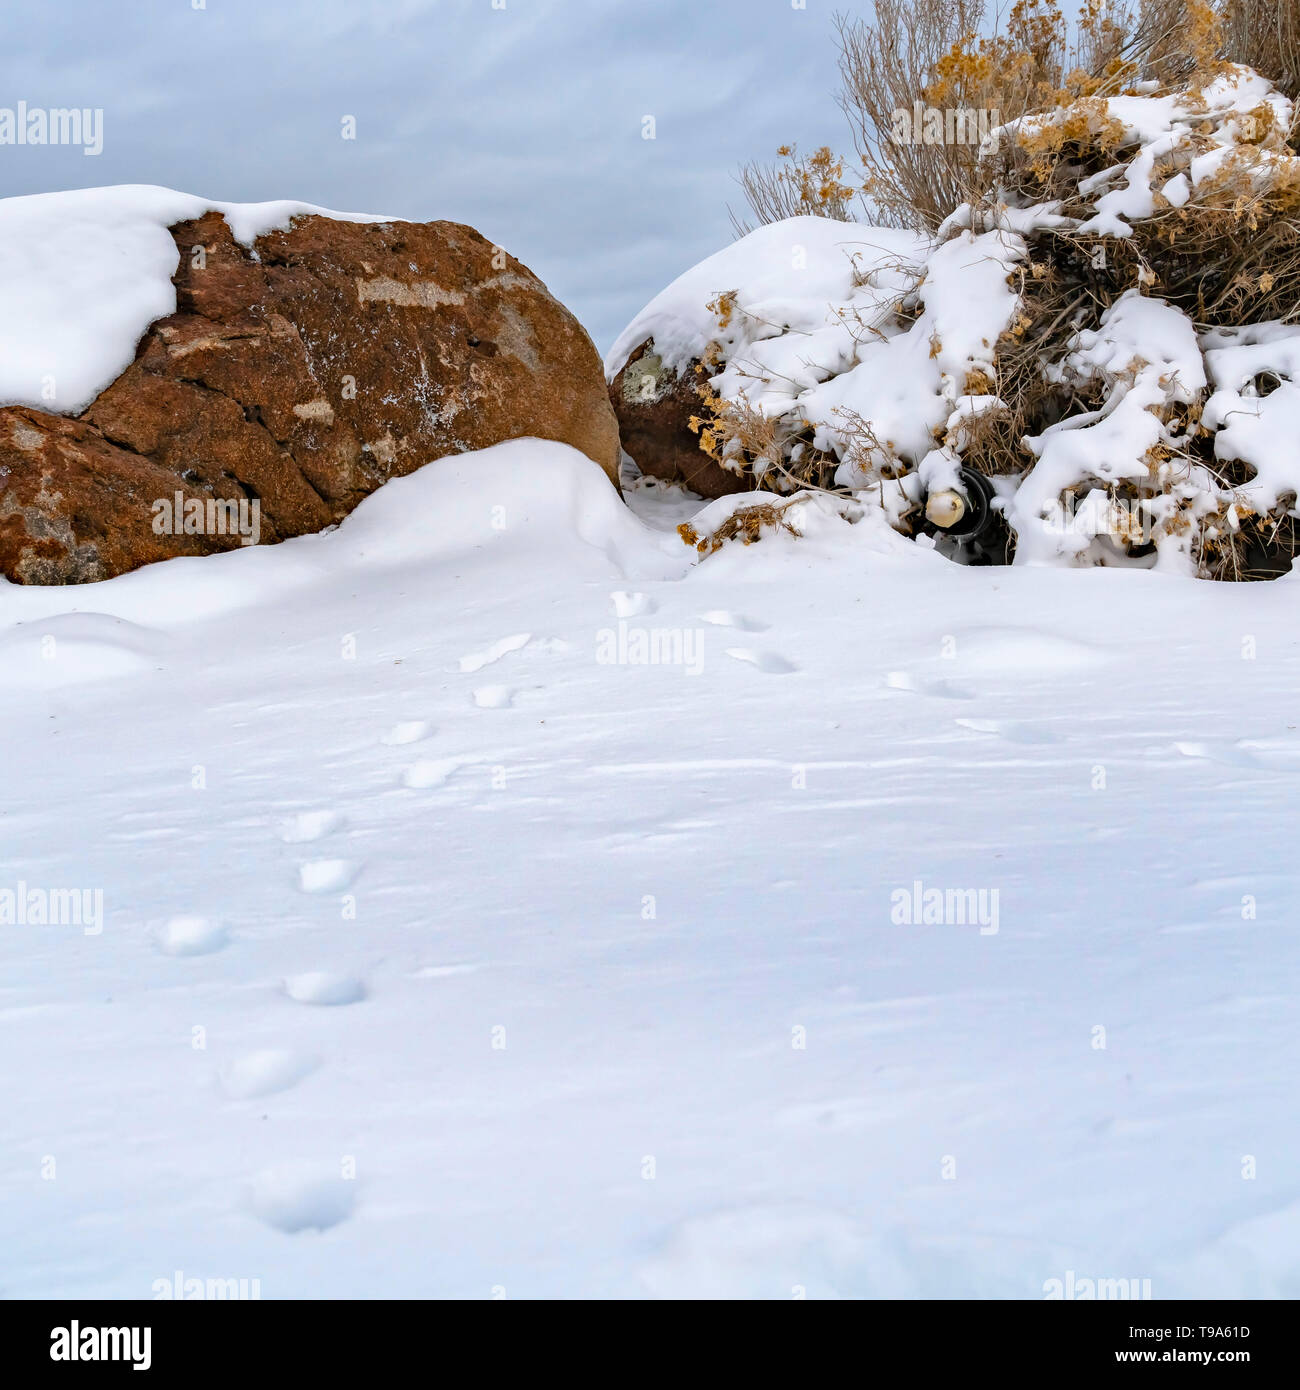 Square Animal tracks on snow covered ground viewed on a frosty winter day - Stock Image